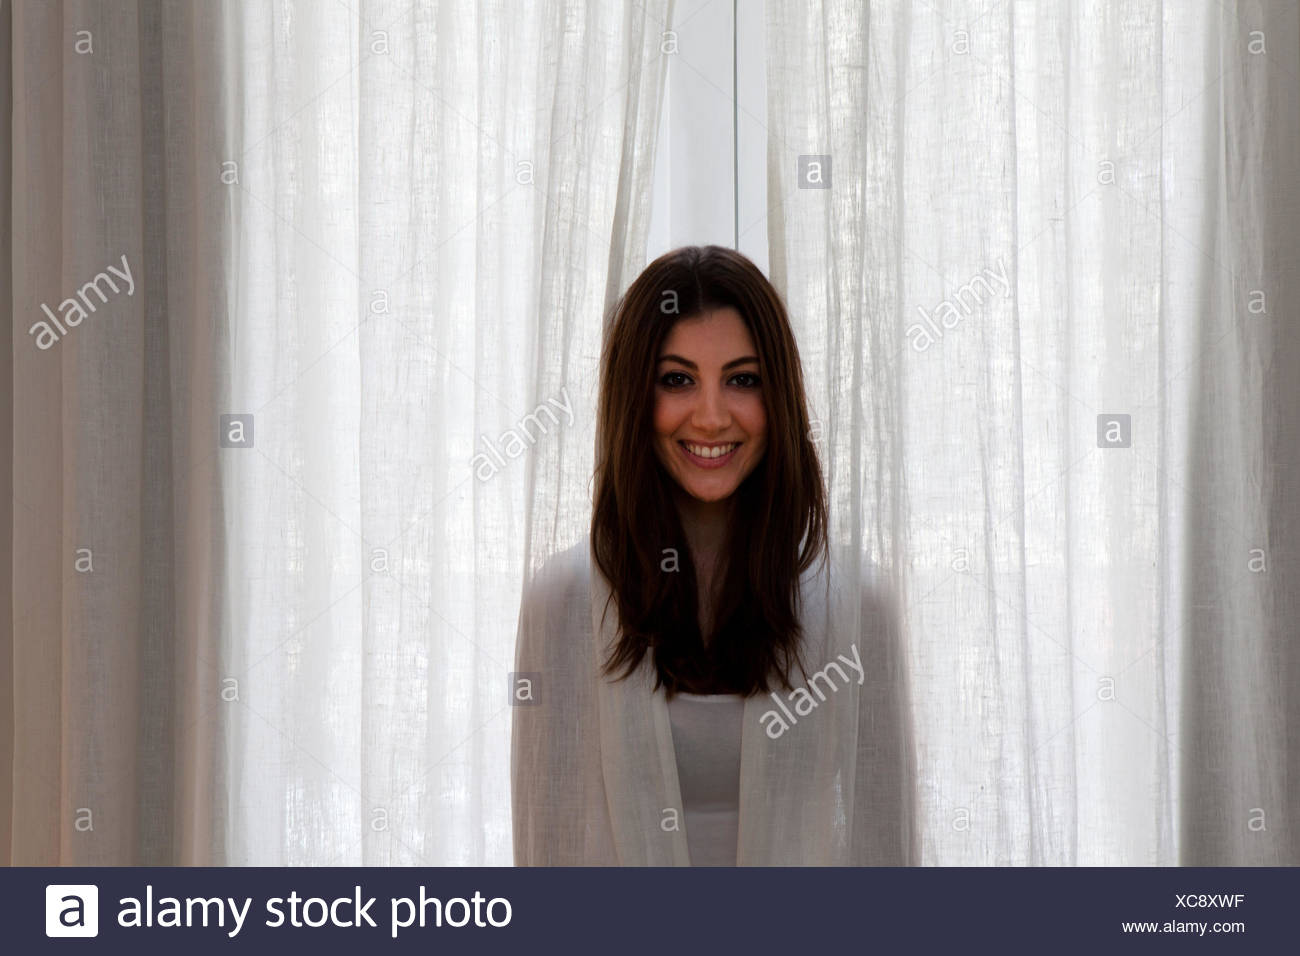 Young adult woman poking head out of curtains - Stock Image